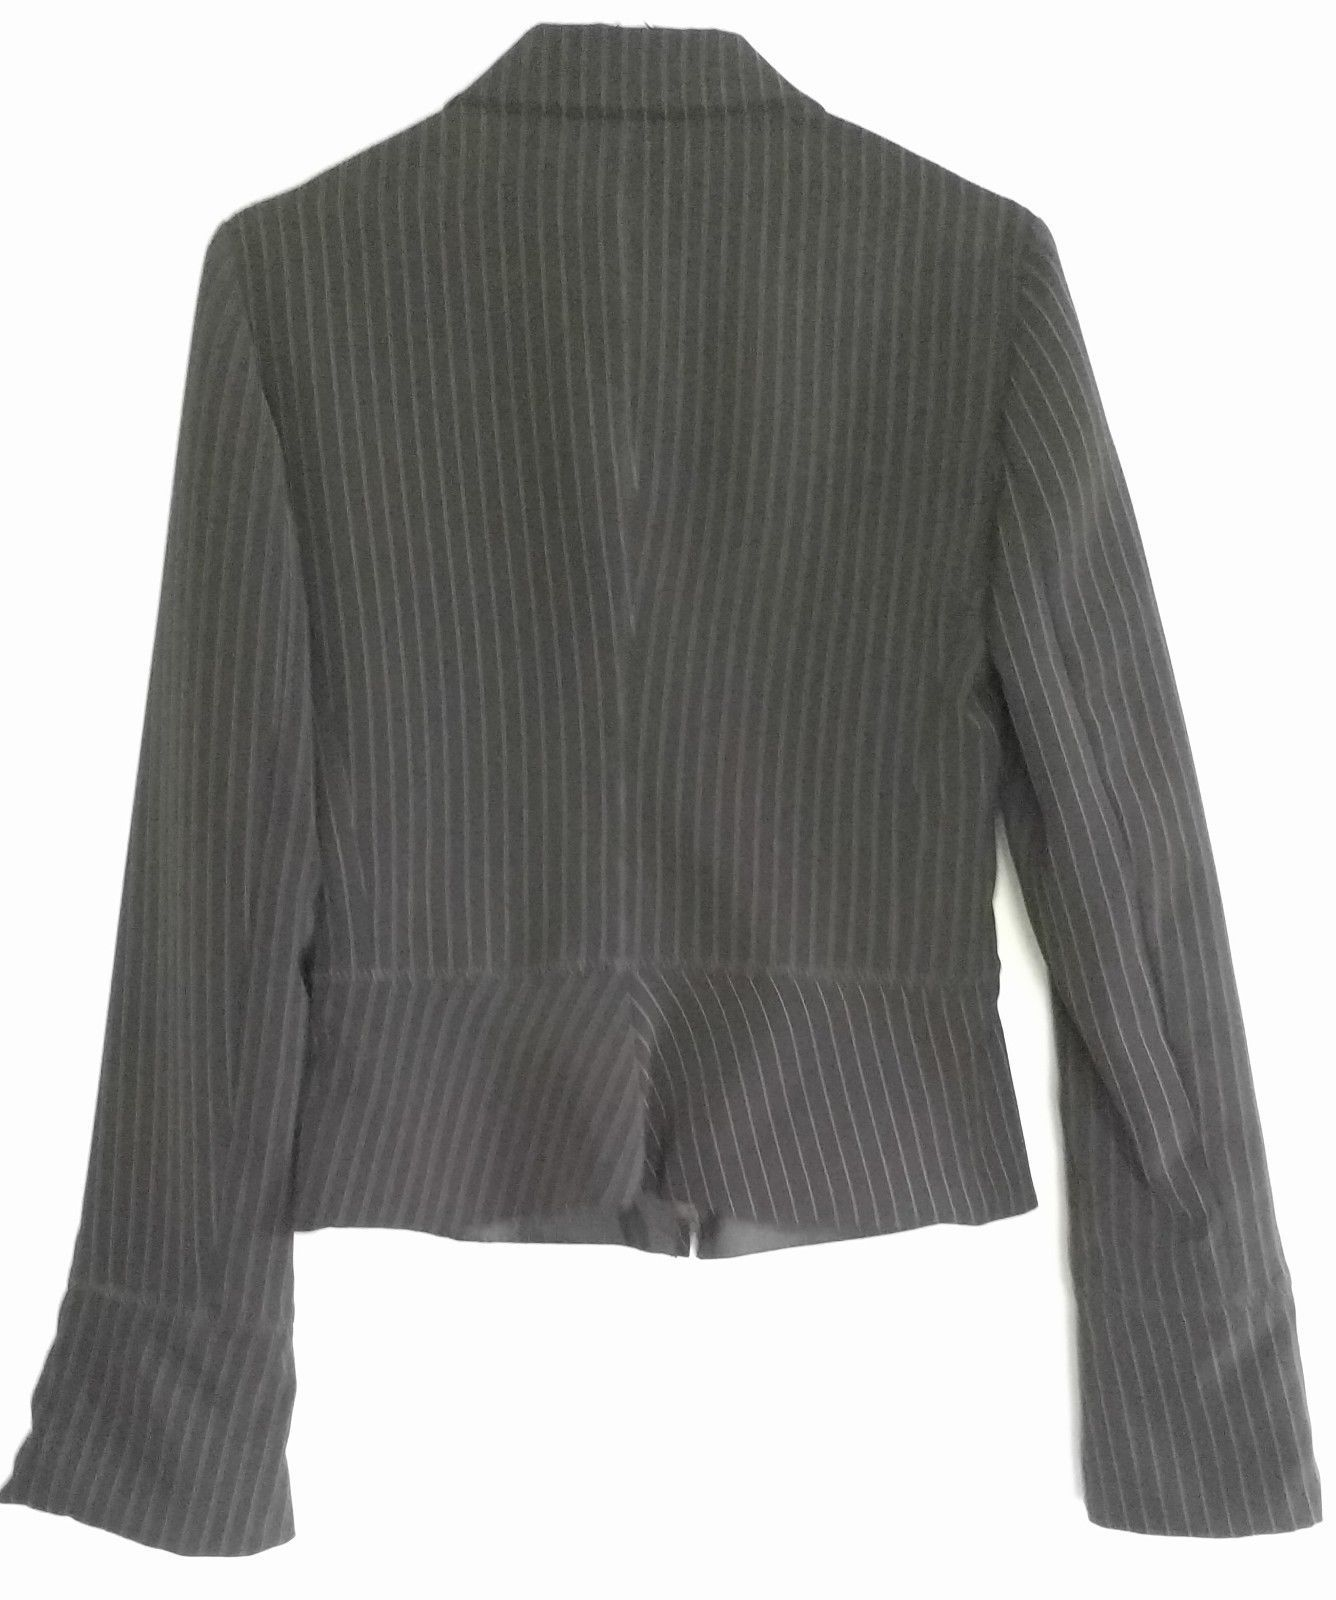 ARMANI COLLEZIONI Zip Jacket Womens Pinstripe Black Short EUC Sz 38 Italy Fitted